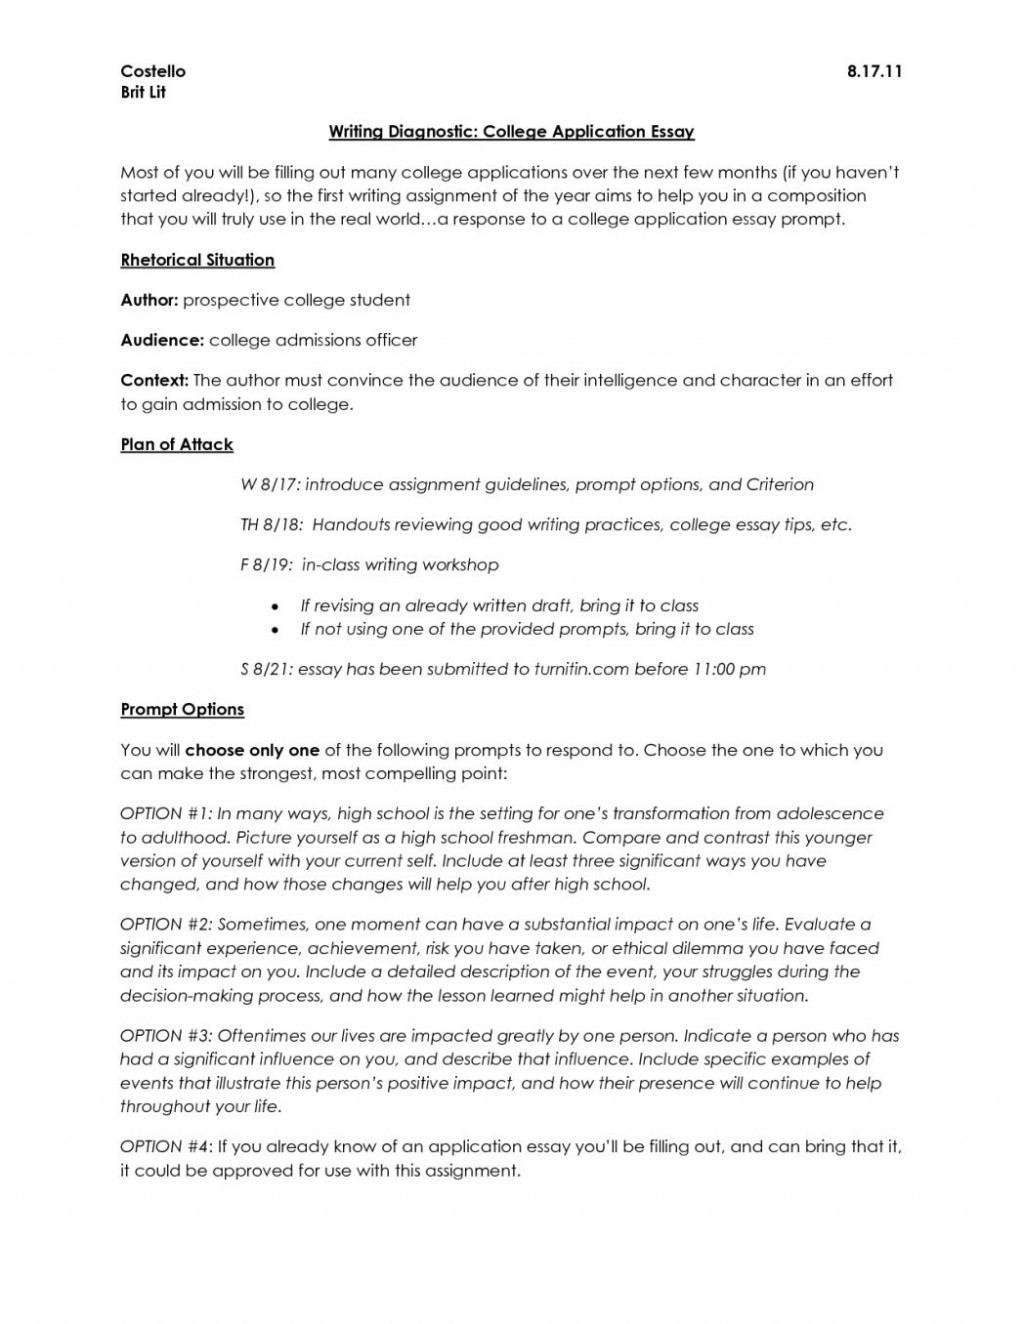 019 Essay Example College Examples Printables Corner Penn State Prompt Best Ideas Of Uf Application Rega Schreyer Honors Length Essays Stirring Samples Prompts 2017 Uc Large